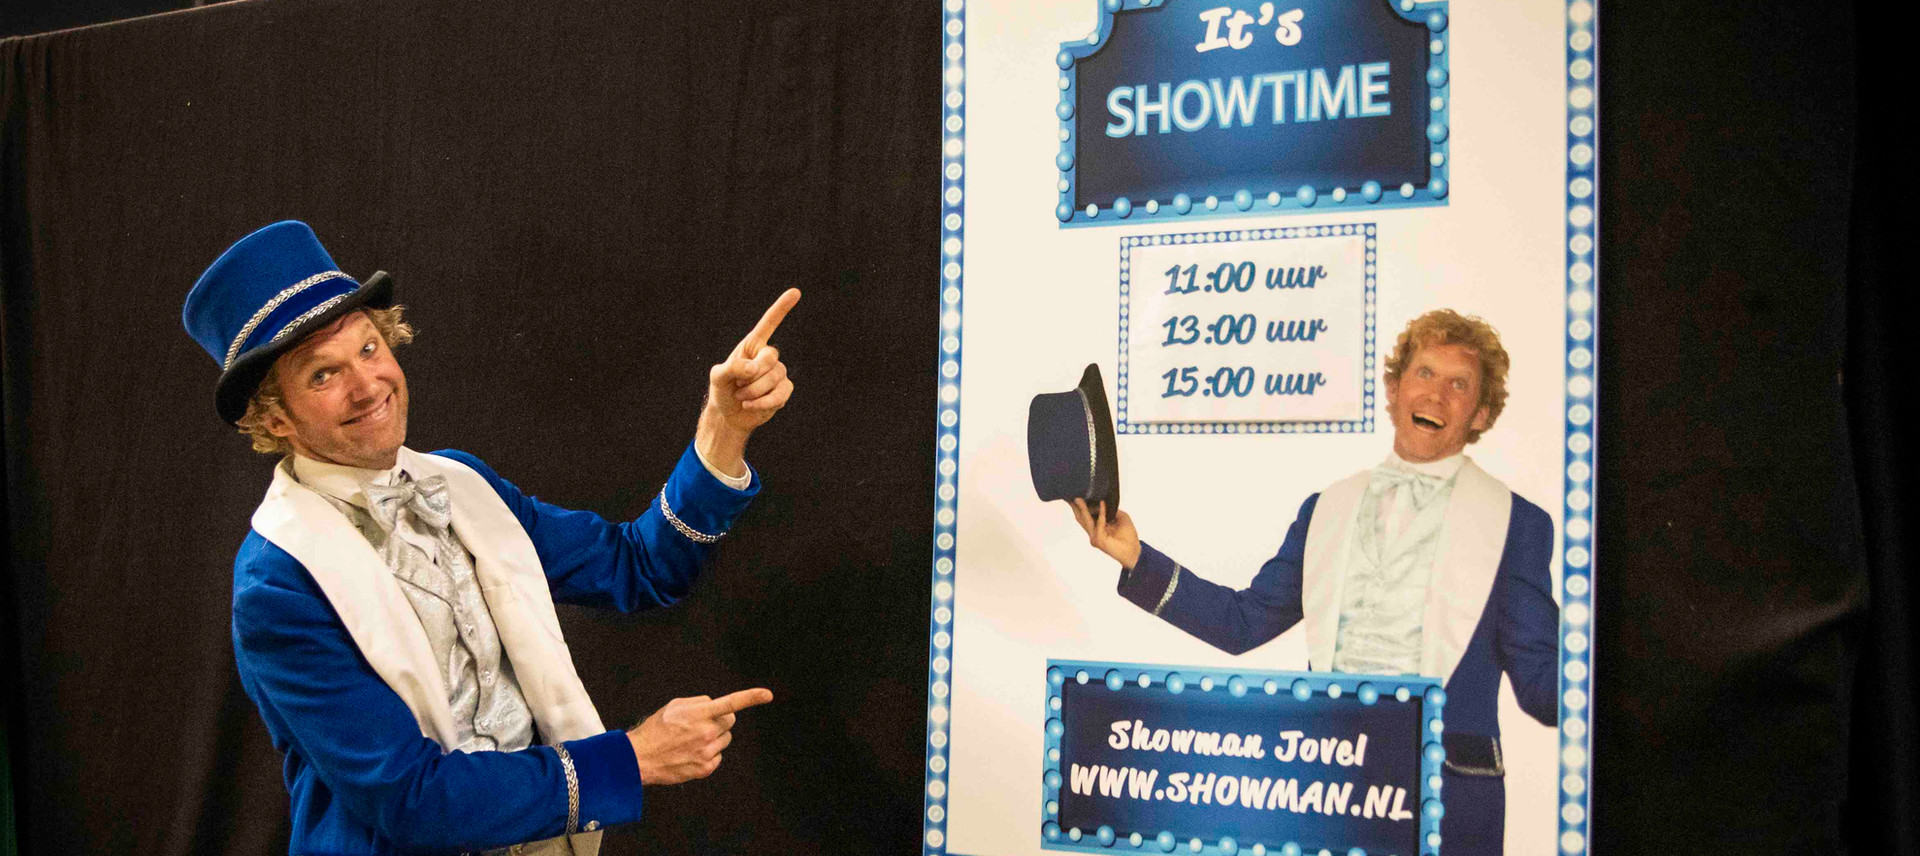 Showman Jovel theater show jeugdvakantie